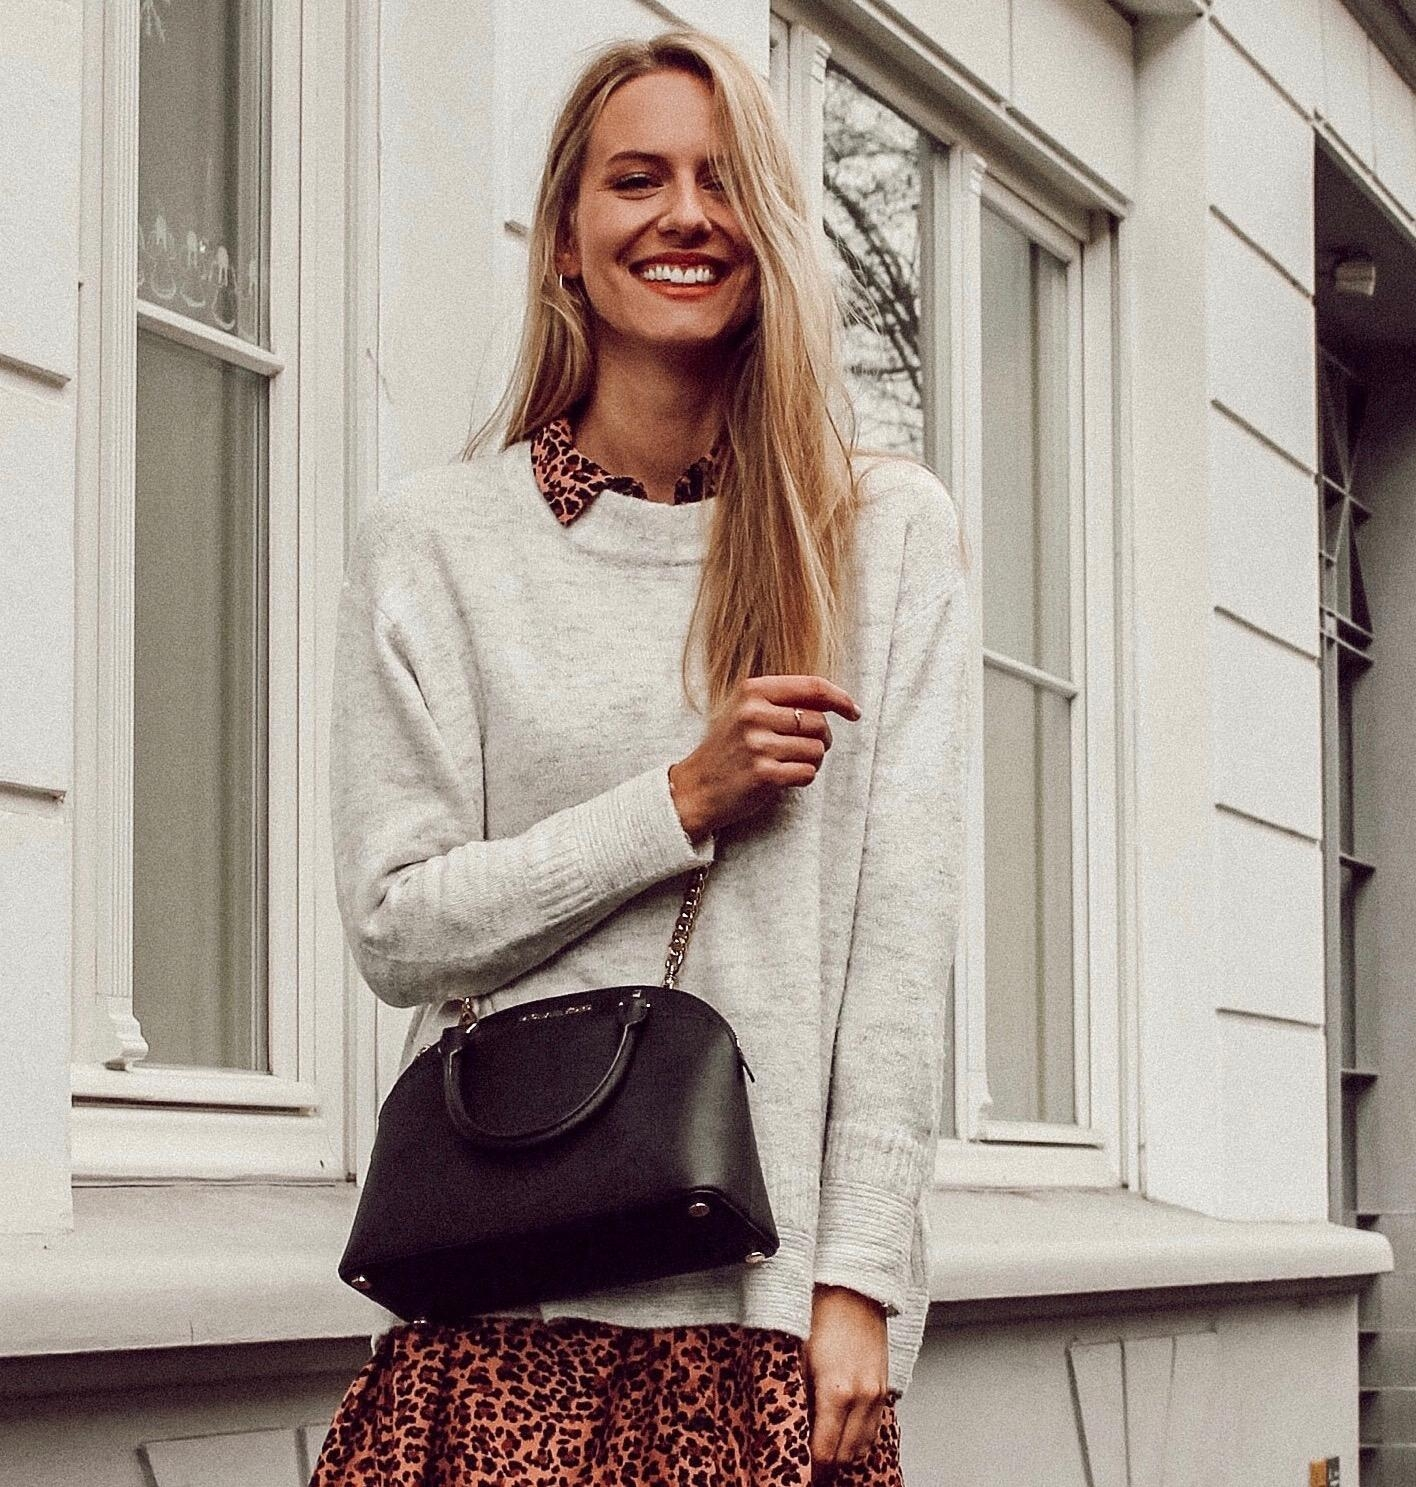 #jumperlook #cozyjumper #feelgoodfashion #lieblingslook #outfit #ootd #happygirl #alltagslook